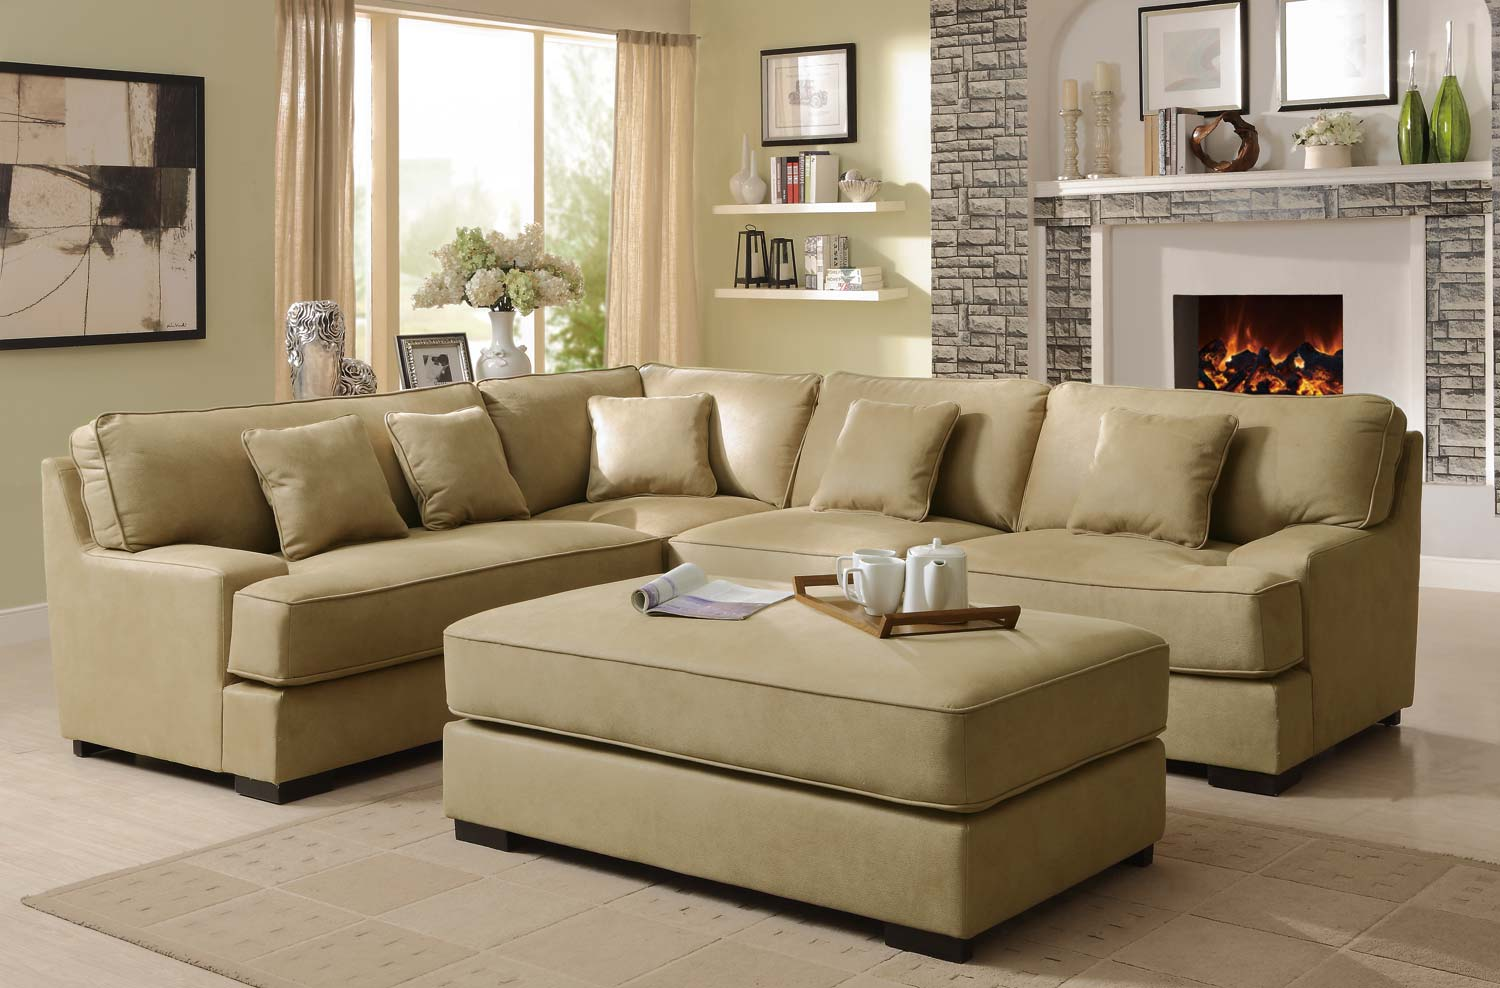 living room sets with sleeper sofa homelegance minnis sectional sofa set beige u9759nf sect 25030